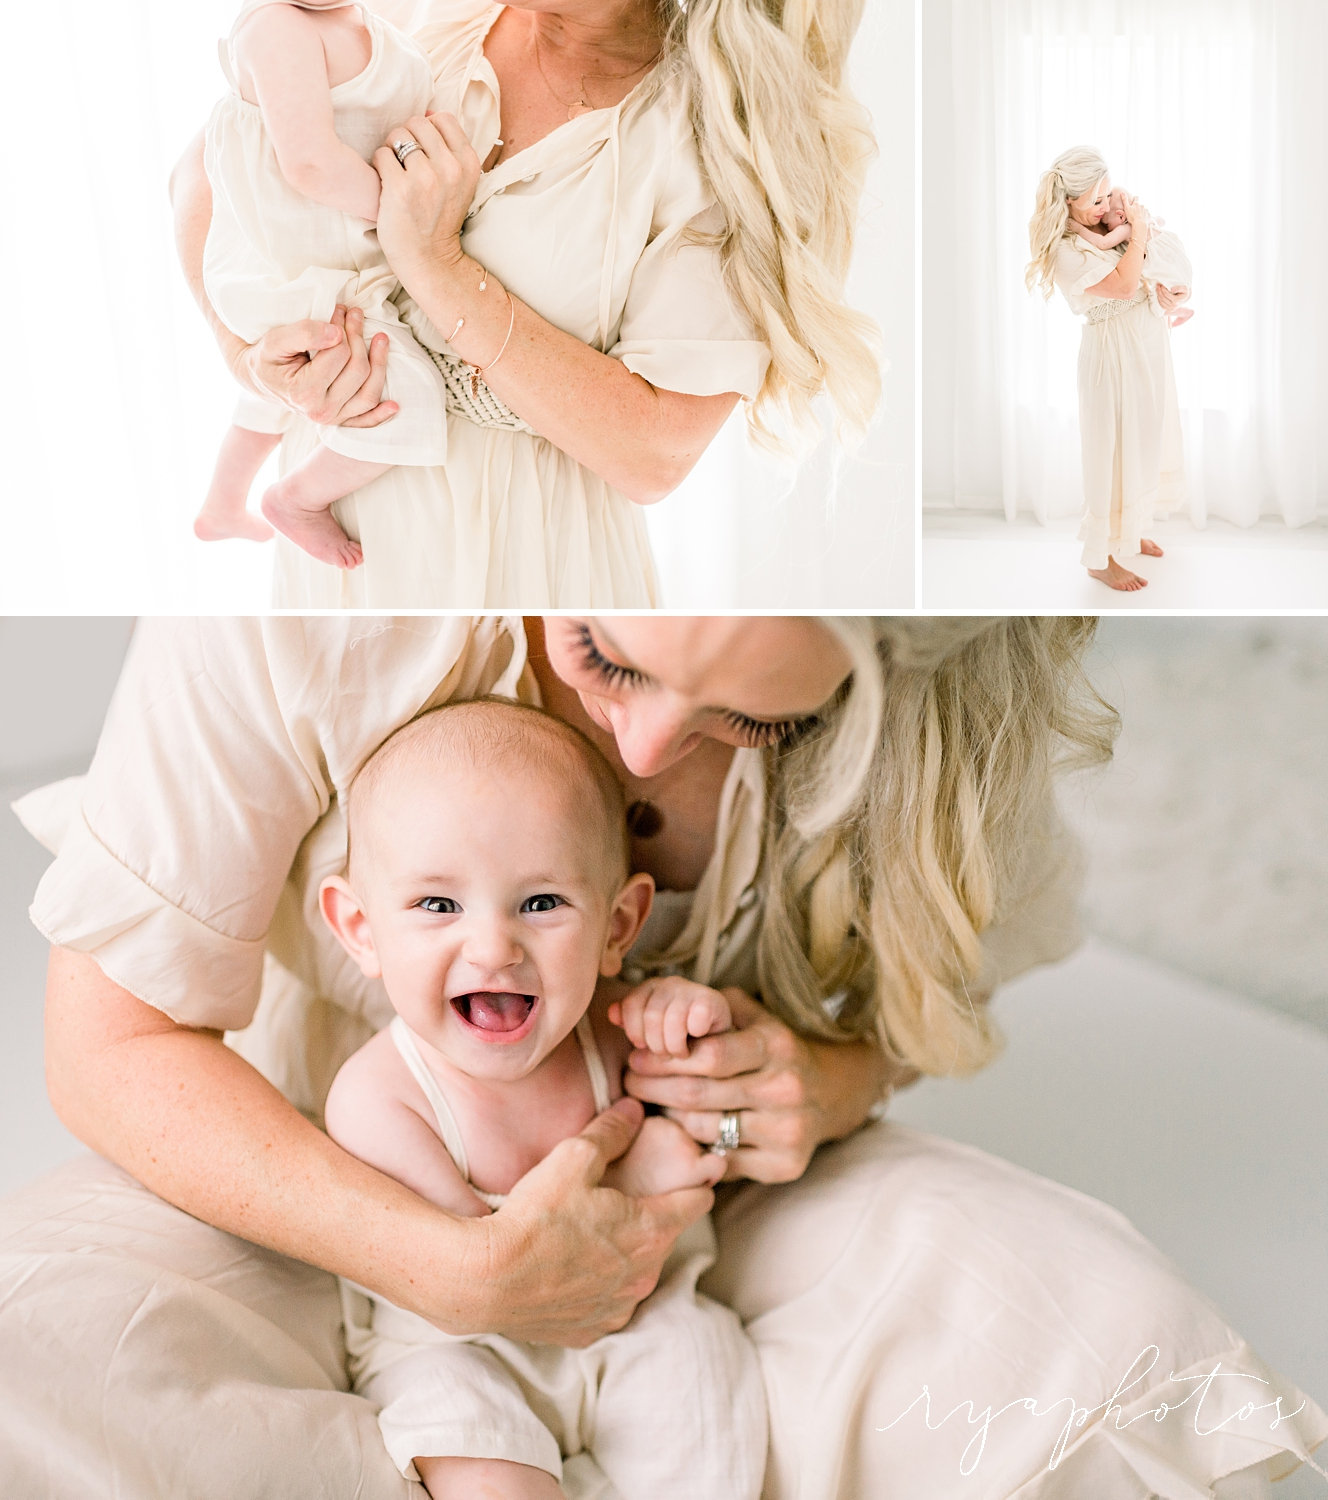 studio, motherhood portrait session, Jacksonville, Florida, Rya Duncklee